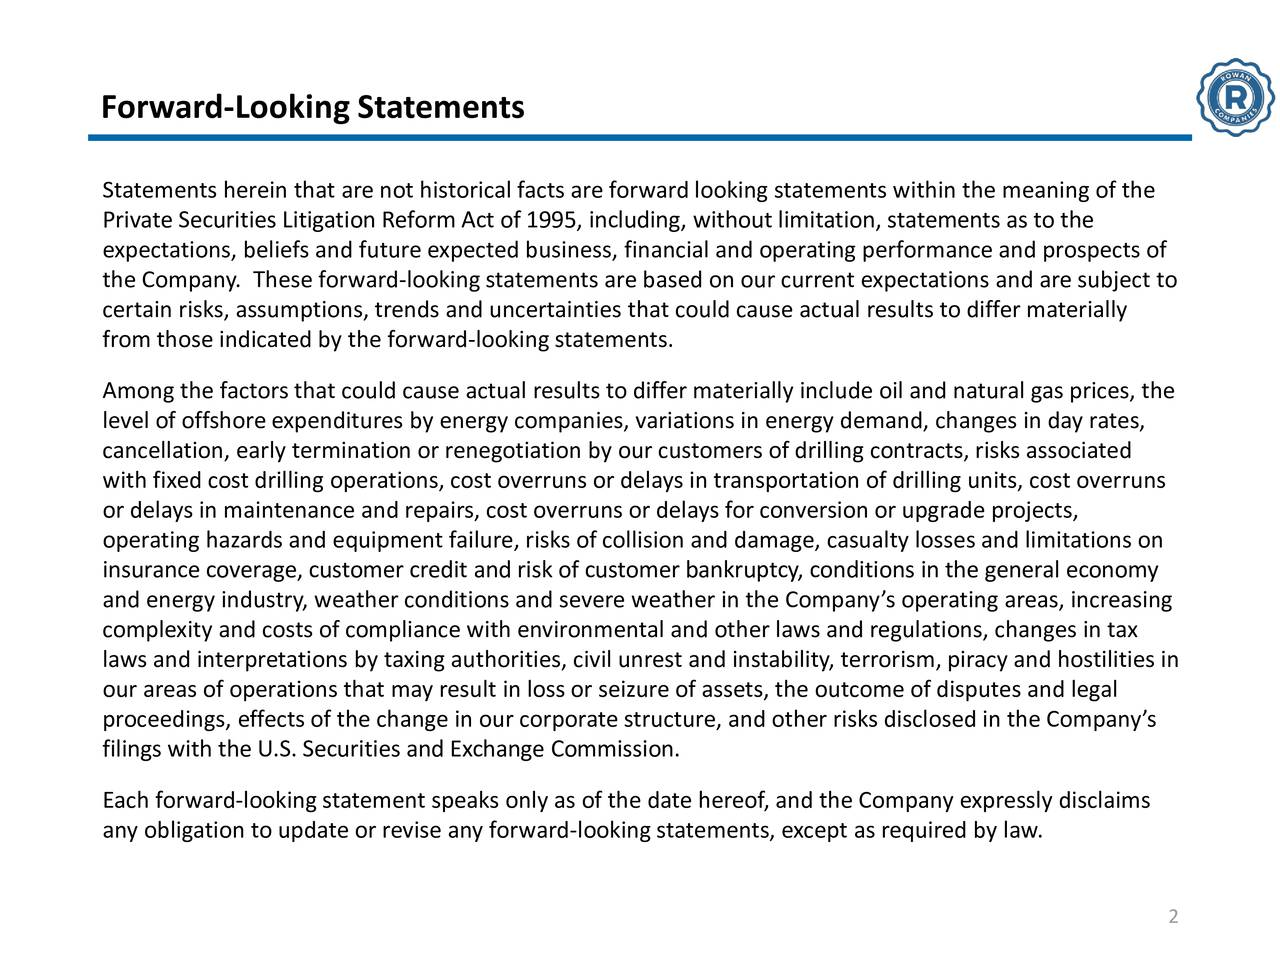 Statements herein that are not historical facts are forward looking statements within the meaning of the Private Securities Litigation Reform Act of 1995, including, without limitation, statements as to the expectations, beliefs and future expected business, financial and operating performance and prospects of the Company. These forward-looking statements are based on our current expectations and are subject to certain risks, assumptions, trends and uncertainties that could cause actual results to differ materially from those indicated by the forward-looking statements. Among the factors that could cause actual results to differ materially include oil and natural gas prices, the level of offshore expenditures by energy companies, variations in energy demand, changes in day rates, cancellation, early termination or renegotiation by our customers of drilling contracts, risks associated with fixed cost drilling operations, cost overruns or delays in transportation of drilling units, cost overruns or delays in maintenance and repairs, cost overruns or delays for conversion or upgrade projects, operating hazards and equipment failure, risks of collision and damage, casualty losses and limitations on insurance coverage, customer credit and risk of customer bankruptcy, conditions in the general economy and energy industry, weather conditions and severe weather in the Companys operating areas, increasing complexity and costs of compliance with environmental and other laws and regulations, changes in tax laws and interpretations by taxing authorities, civil unrest and instability, terrorism, piracy and hostilities in our areas of operations that may result in loss or seizure of assets, the outcome of disputes and legal proceedings, effects of the change in our corporate structure, and other risks disclosed in the Companys filings with the U.S. Securities and Exchange Commission. Each forward-looking statement speaks only as of the date hereof, and the Company expressly discl